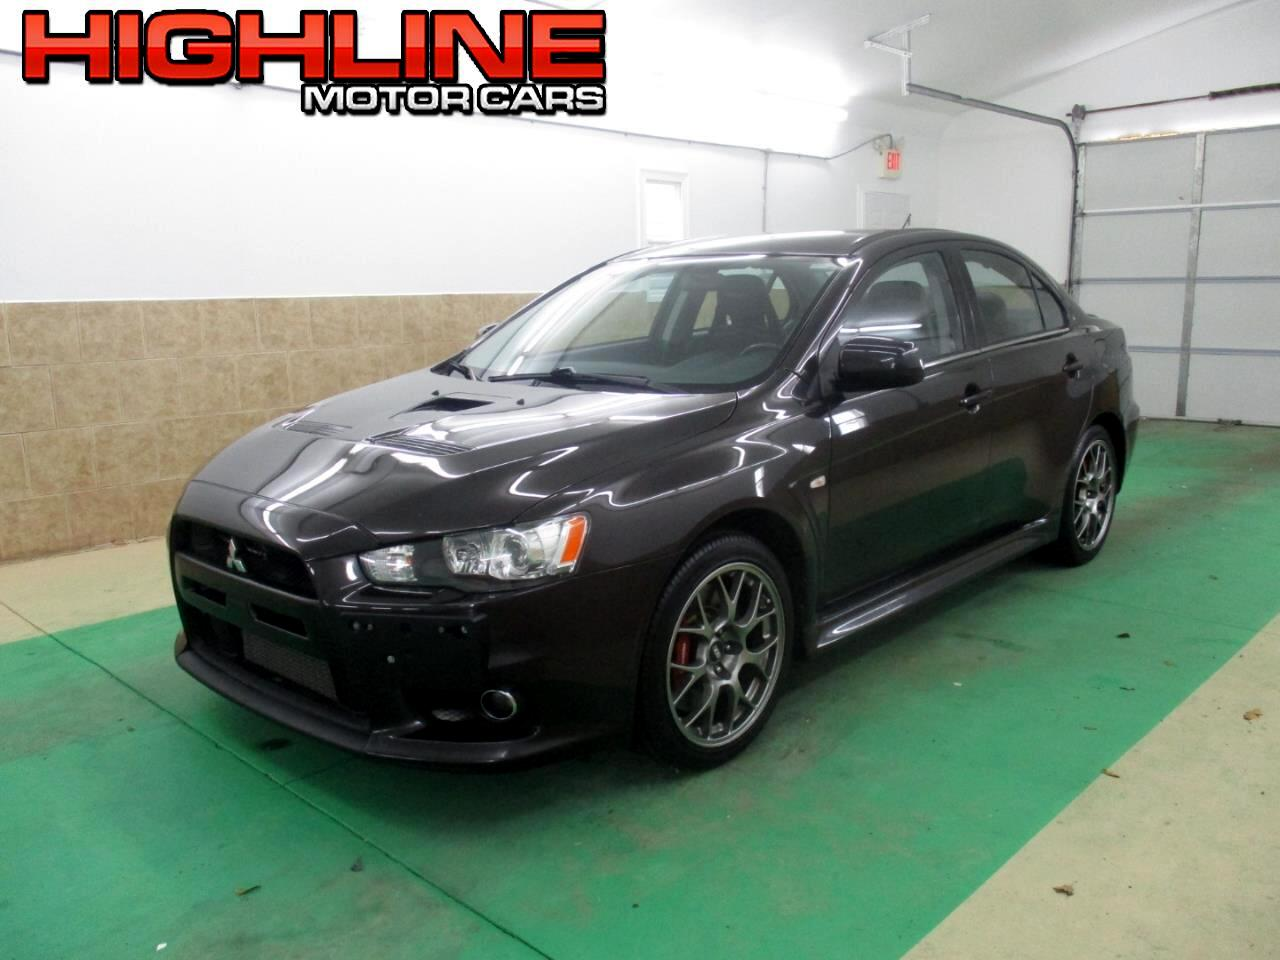 2012 Mitsubishi Lancer Evolution 4dr Sdn TC-SST MR